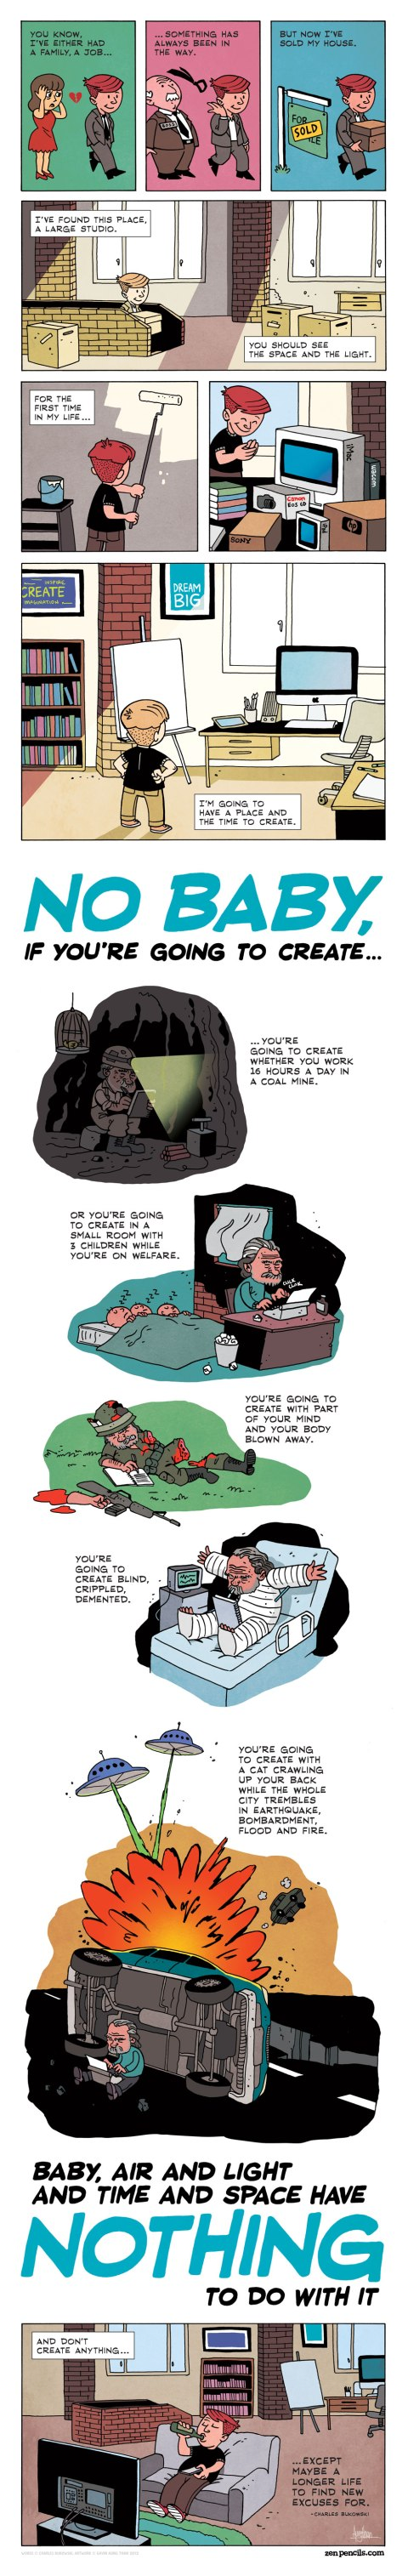 zen pencils comic